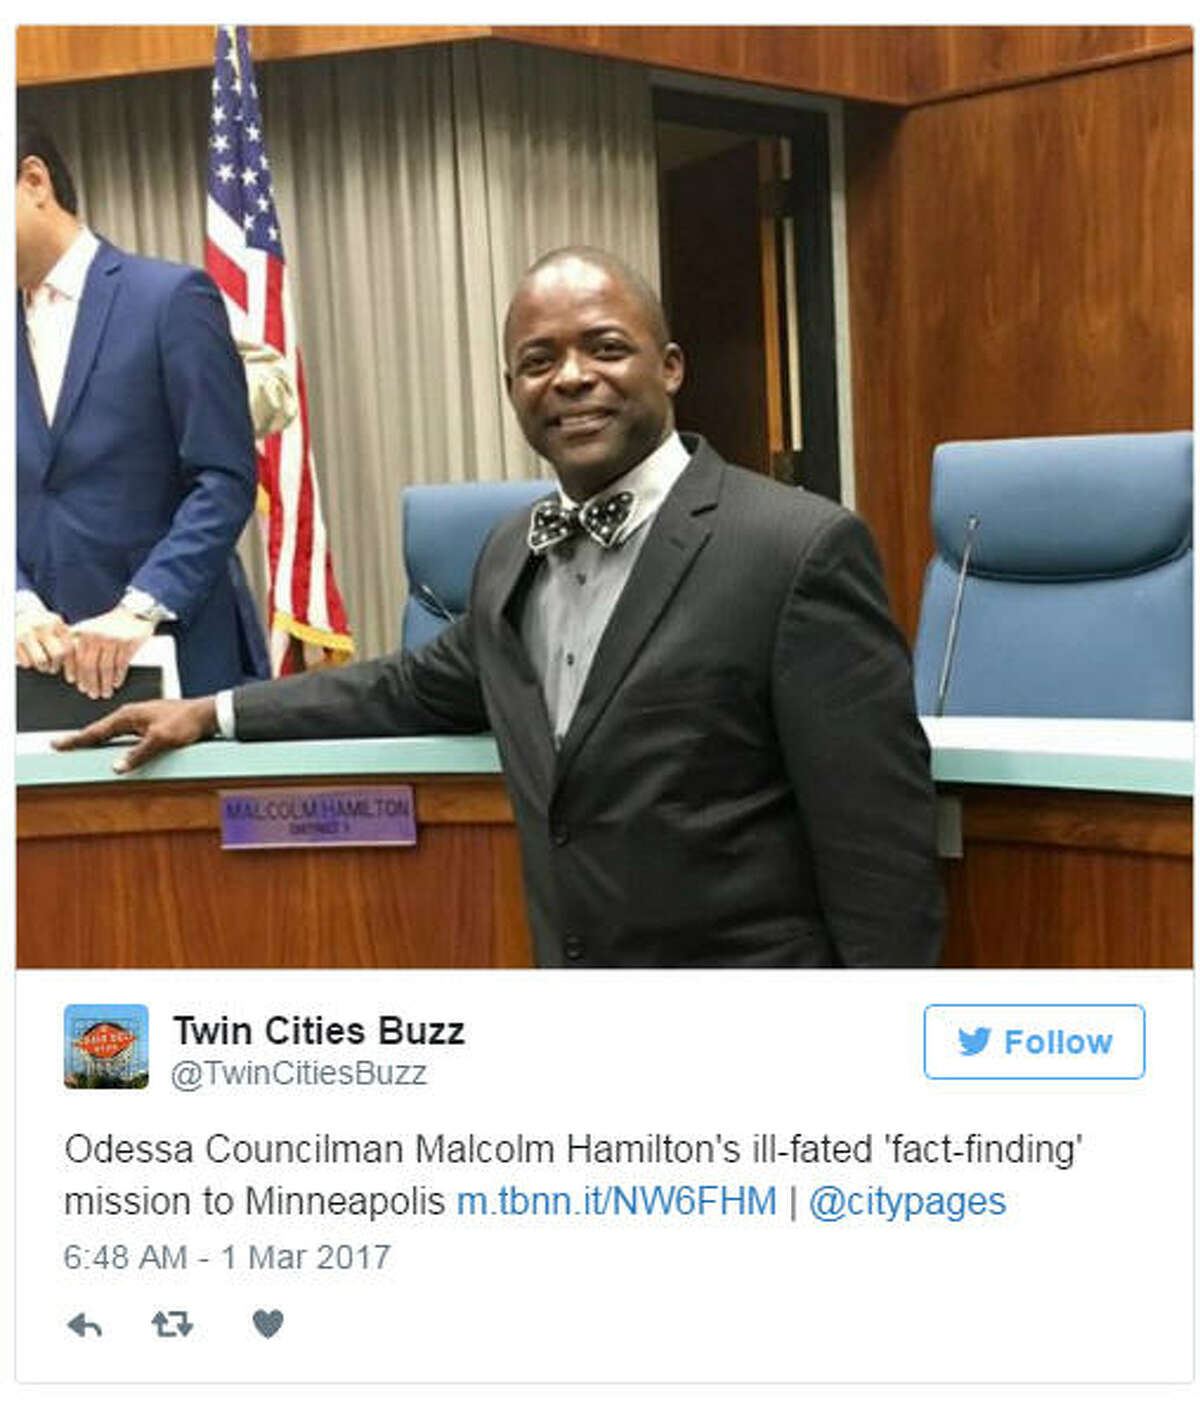 Odessa City Councilman Malcolm Hamilton allegedly posted a threatening message on Facebook about the Odessa American, which has published articles questioning his trip to Minneapolis at taxpayer expense. (Twitter via @TwinCitiesBuzz)